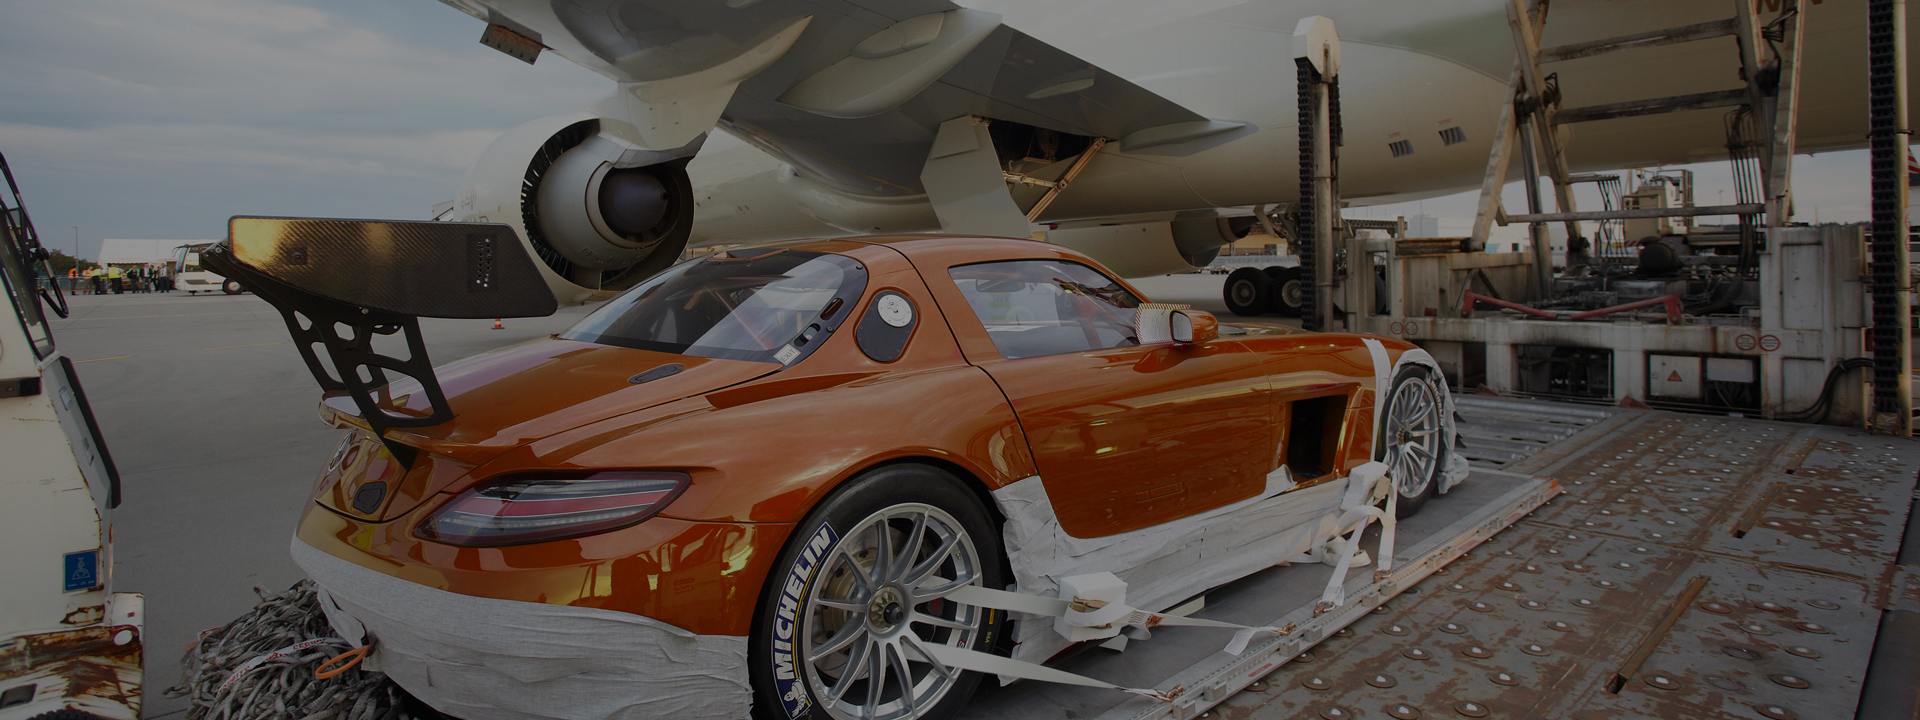 We handle all types of air cargo